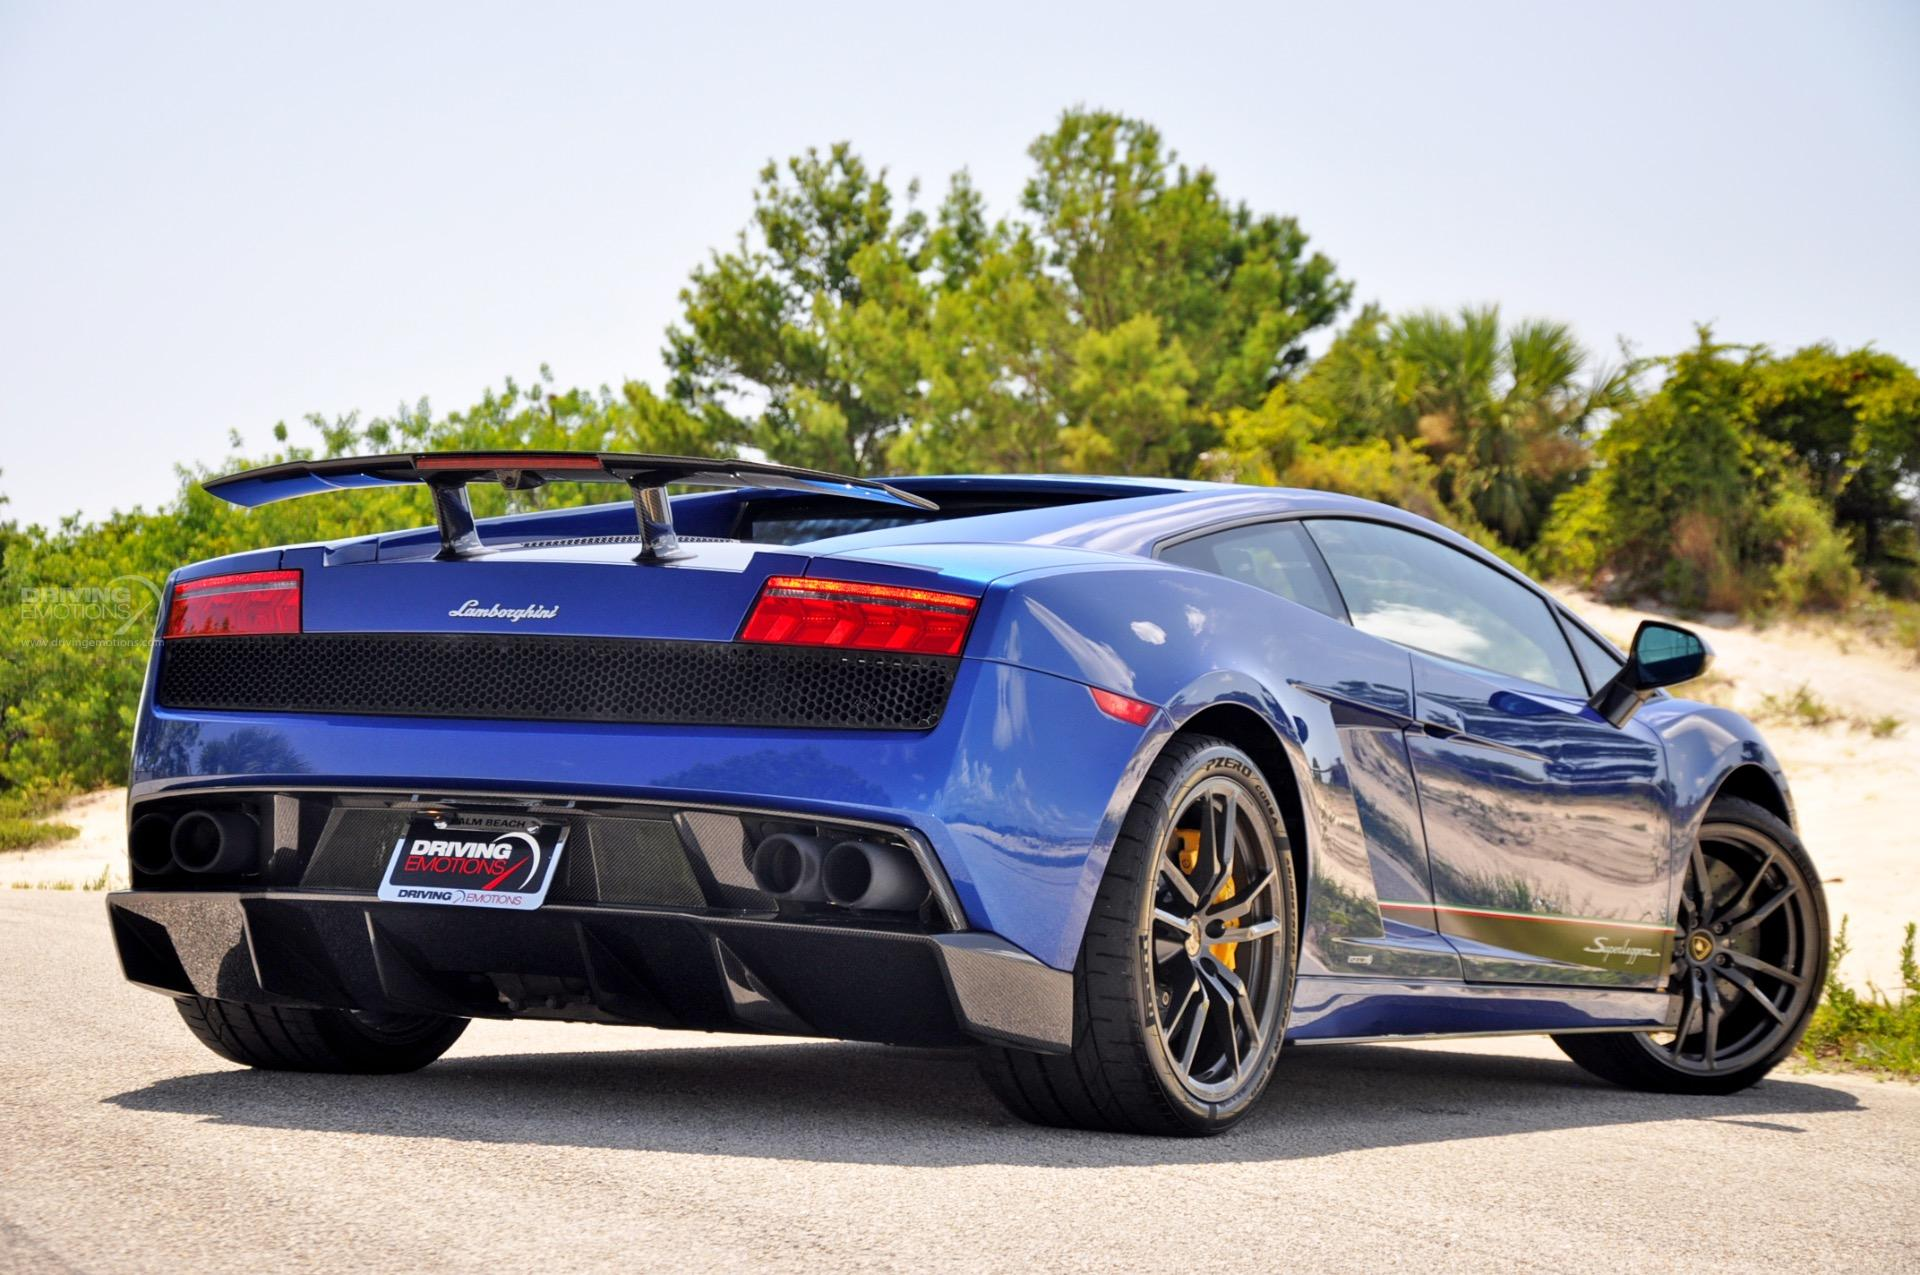 Used 2013 Lamborghini Gallardo LP570 4 Superleggera LP 570 4 Superleggera |  Lake Park